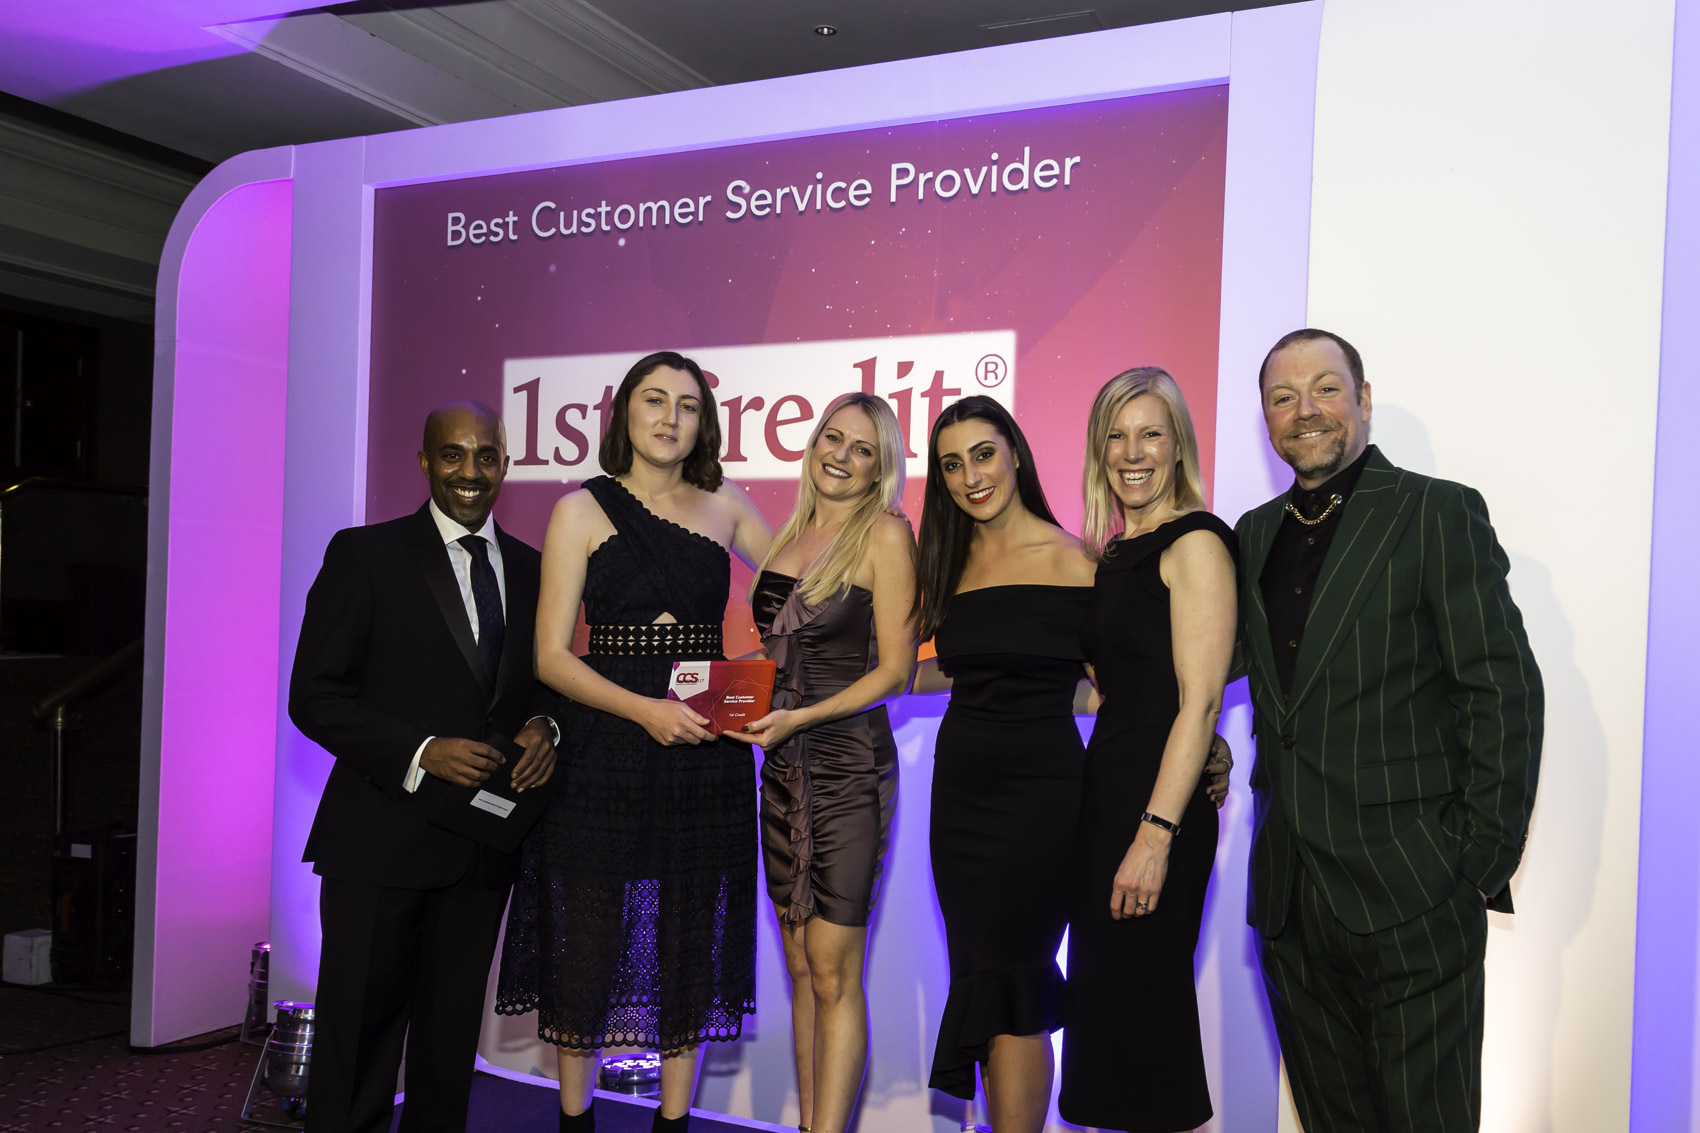 Winners CCS 2017 - 10 Best Customer Service Provider